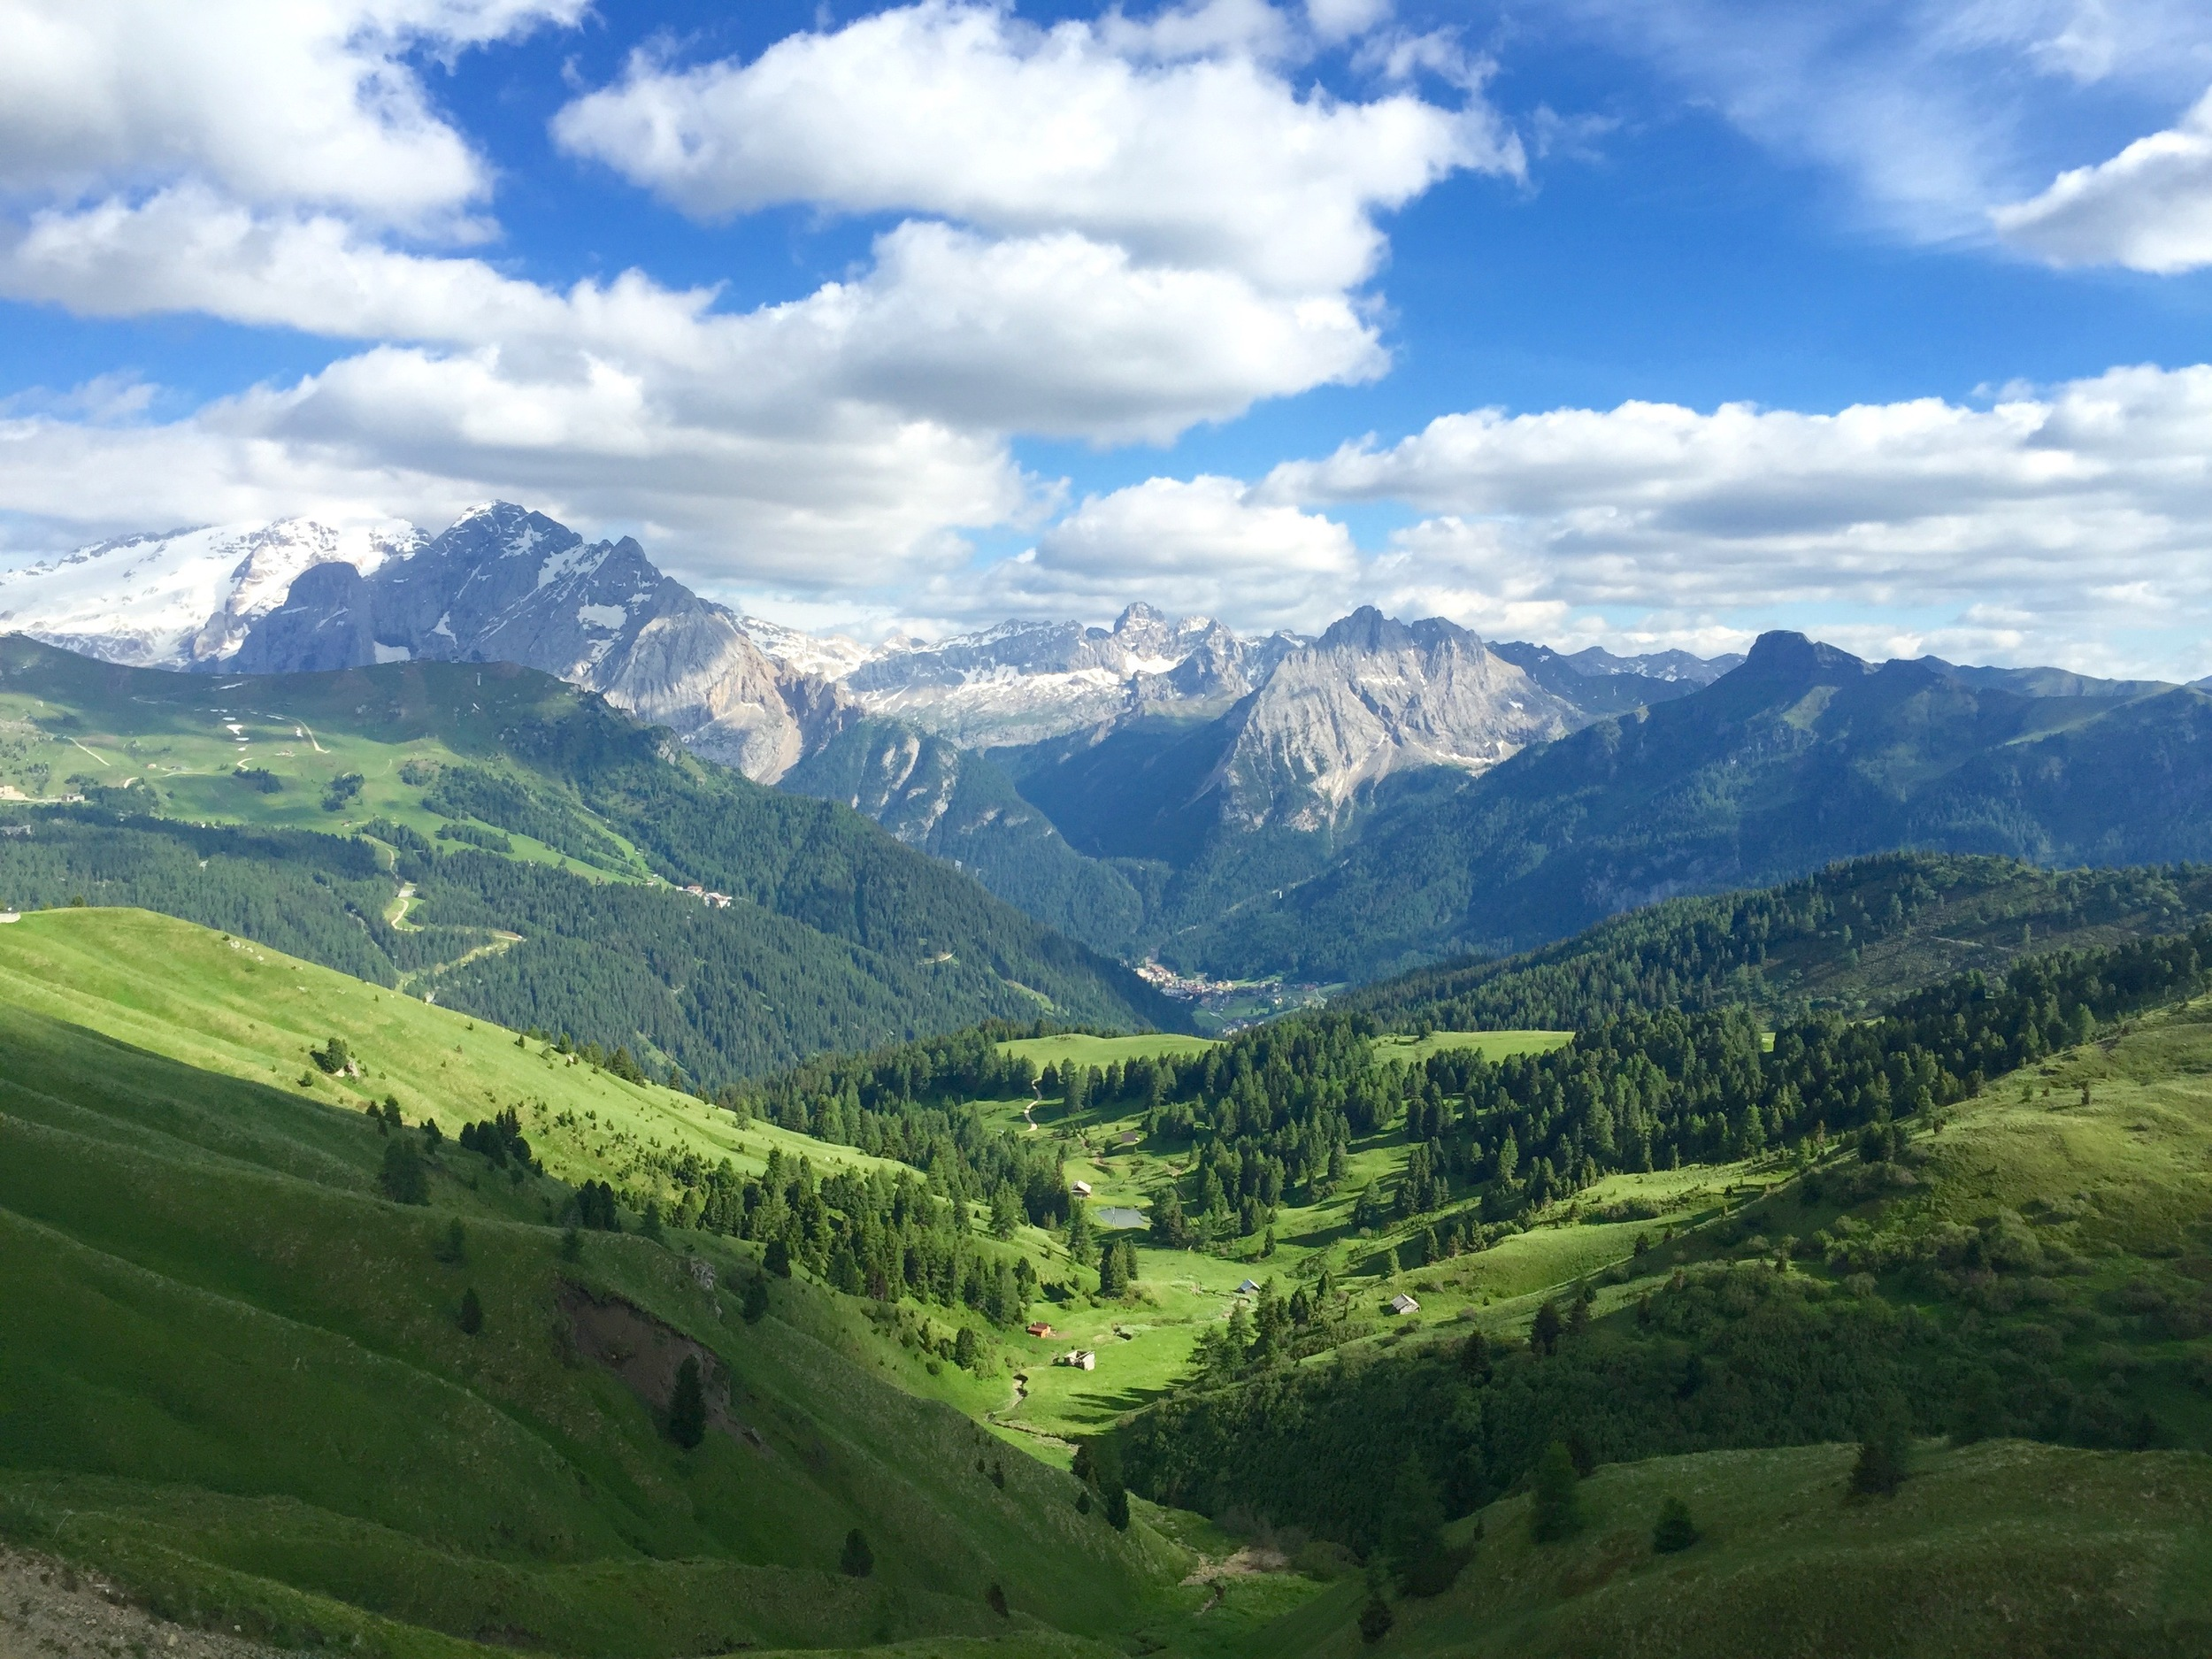 The Selle Pass